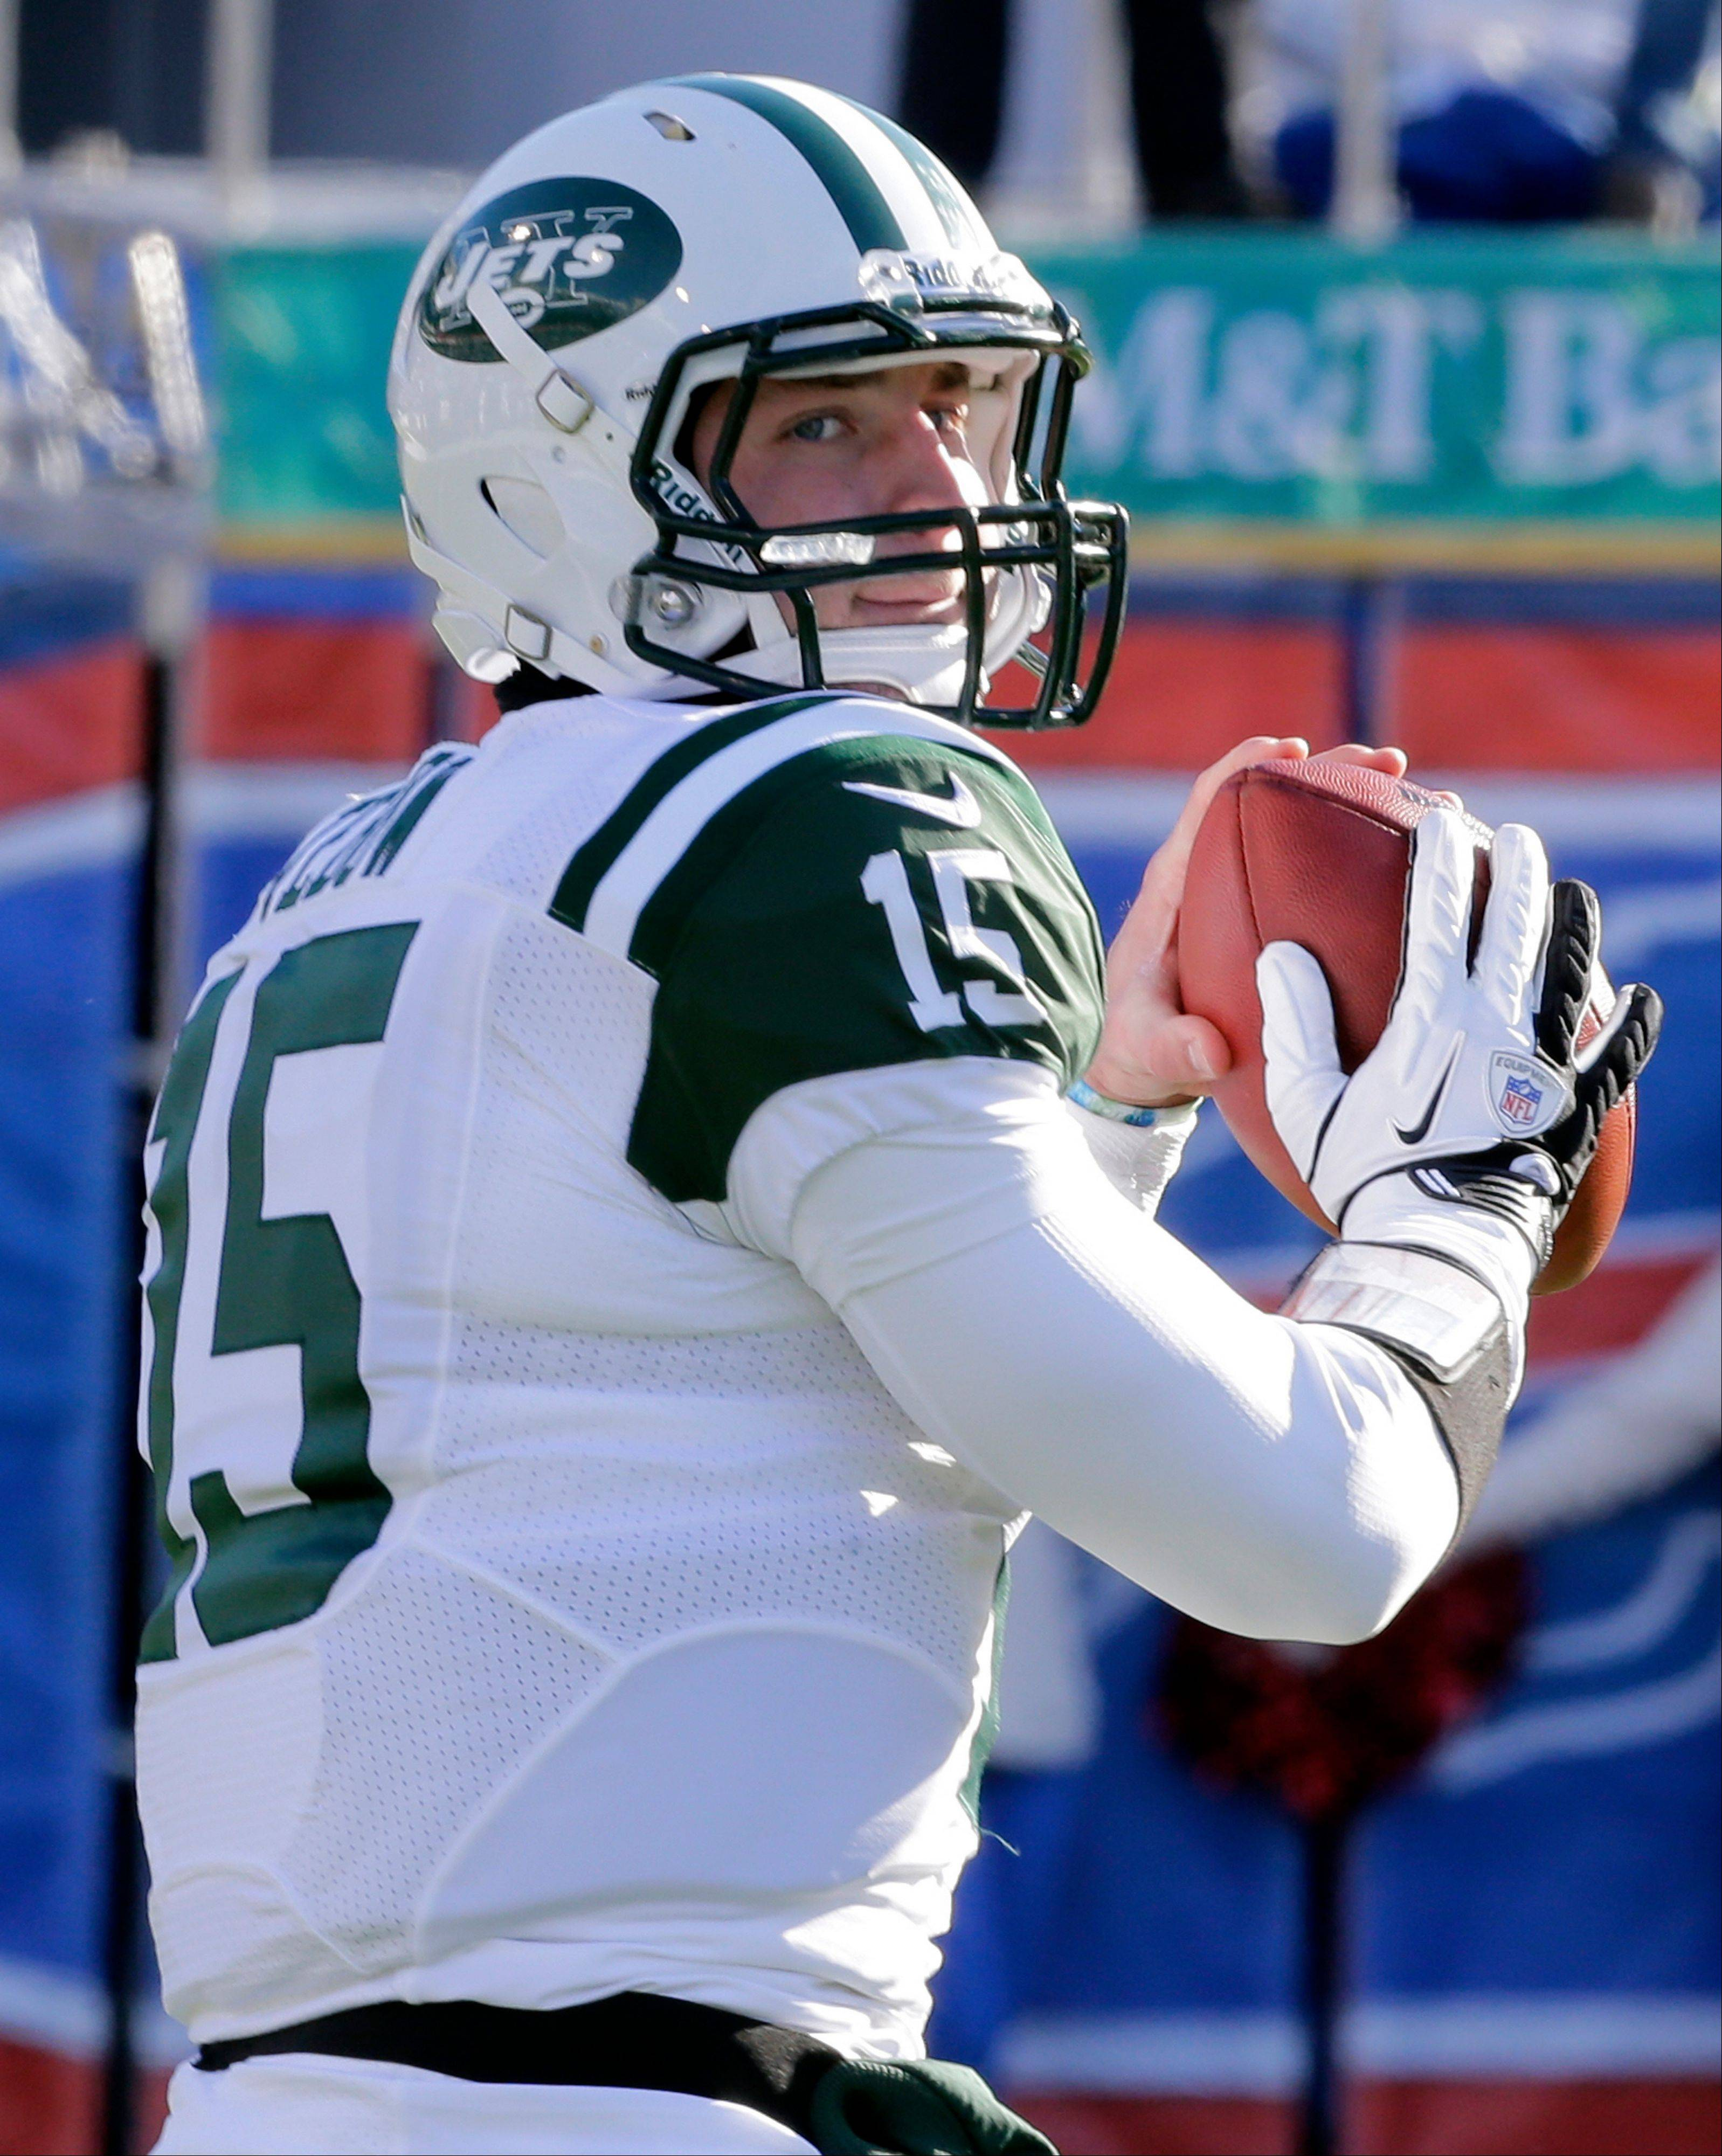 FILE - In a Sunday, Dec. 30, 2012, file photo, New York Jets quarterback Tim Tebow (15) warms up before of an NFL football game against the Buffalo Bills, in Orchard Park, N.Y. Likely done in New York after one frustrating season and Jacksonville already saying no to a happy homecoming, what's next for Tebow, one of the league's most popular and polarizing players? A backup role on another NFL team? A position change? Th